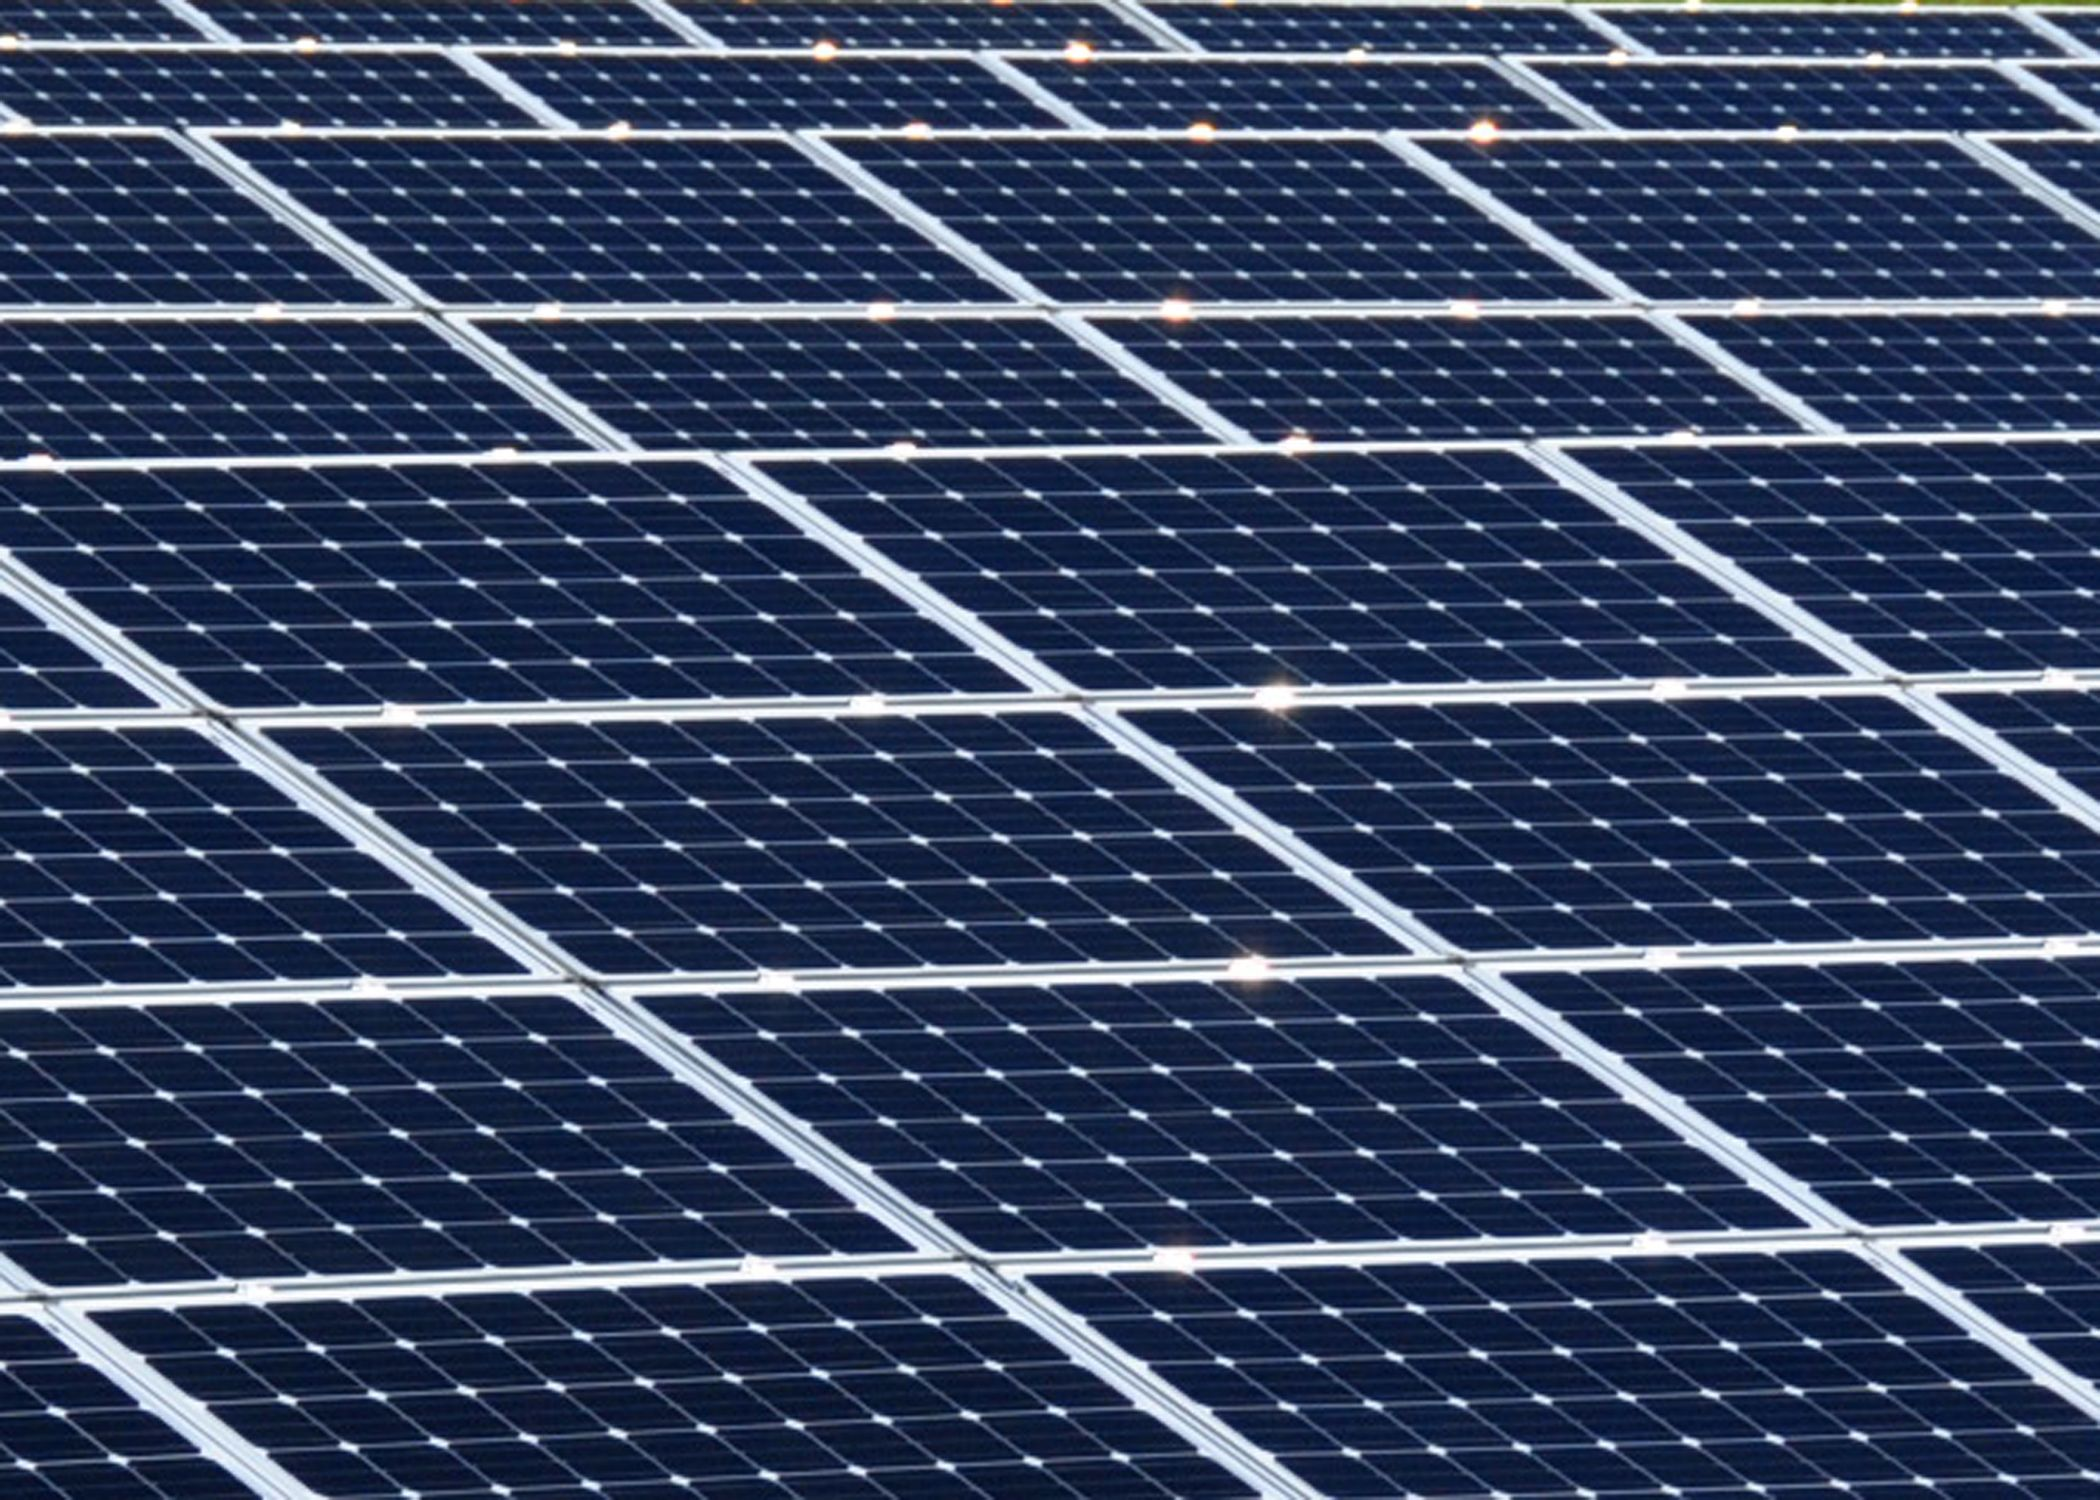 Florida Voted Against A Controversial Solar Energy Bill Green Eco Sustainable Solar Panels Solar Power Solar Installation